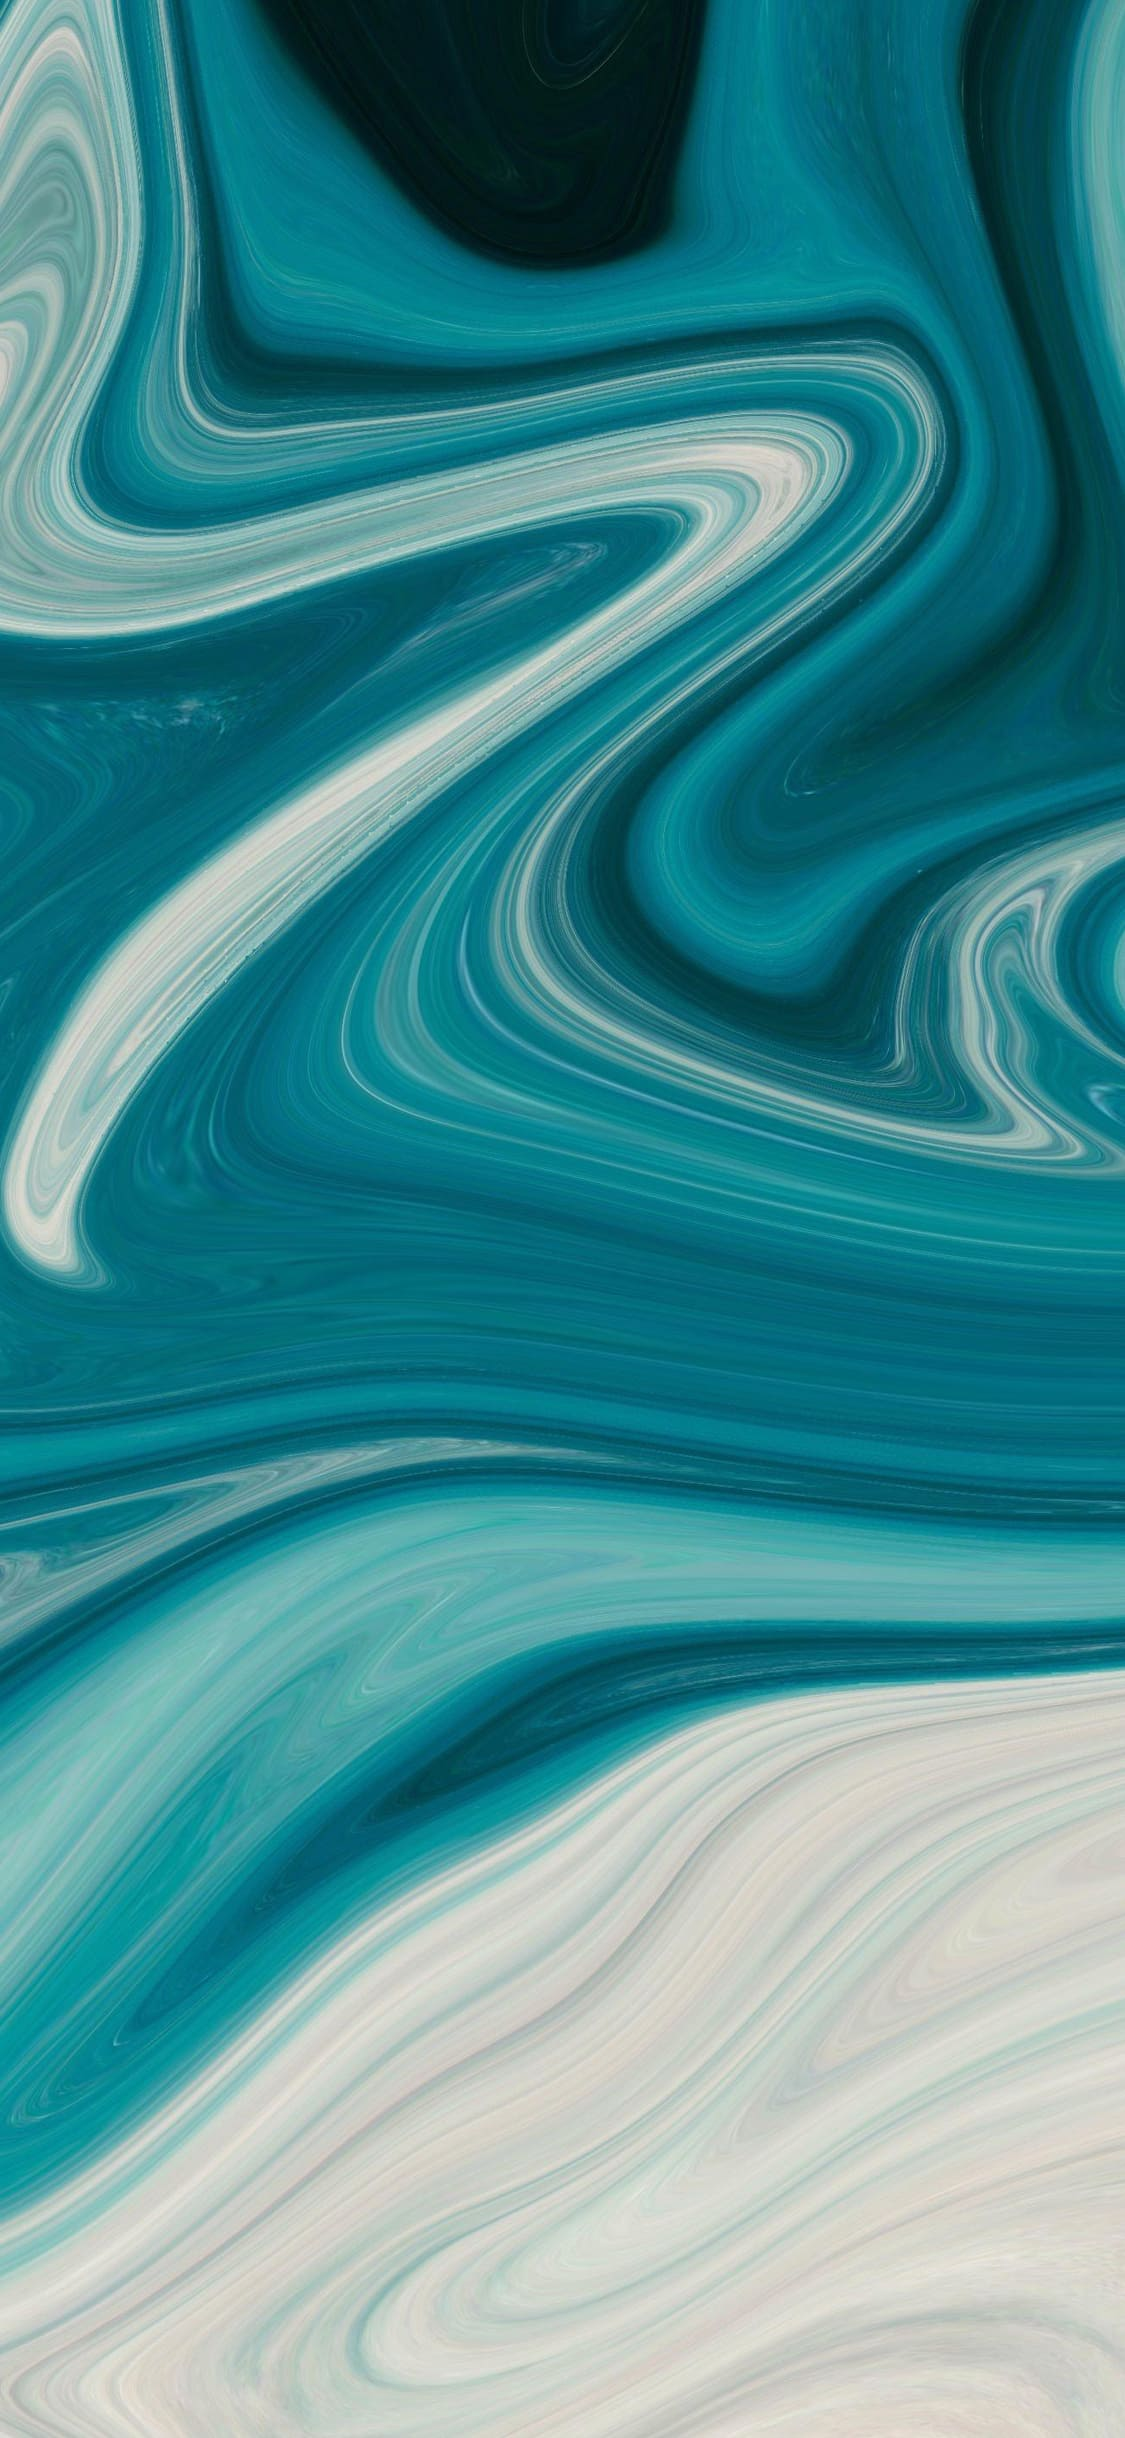 Download The New Default IOS 12 Wallpaper For IPhone, IPad